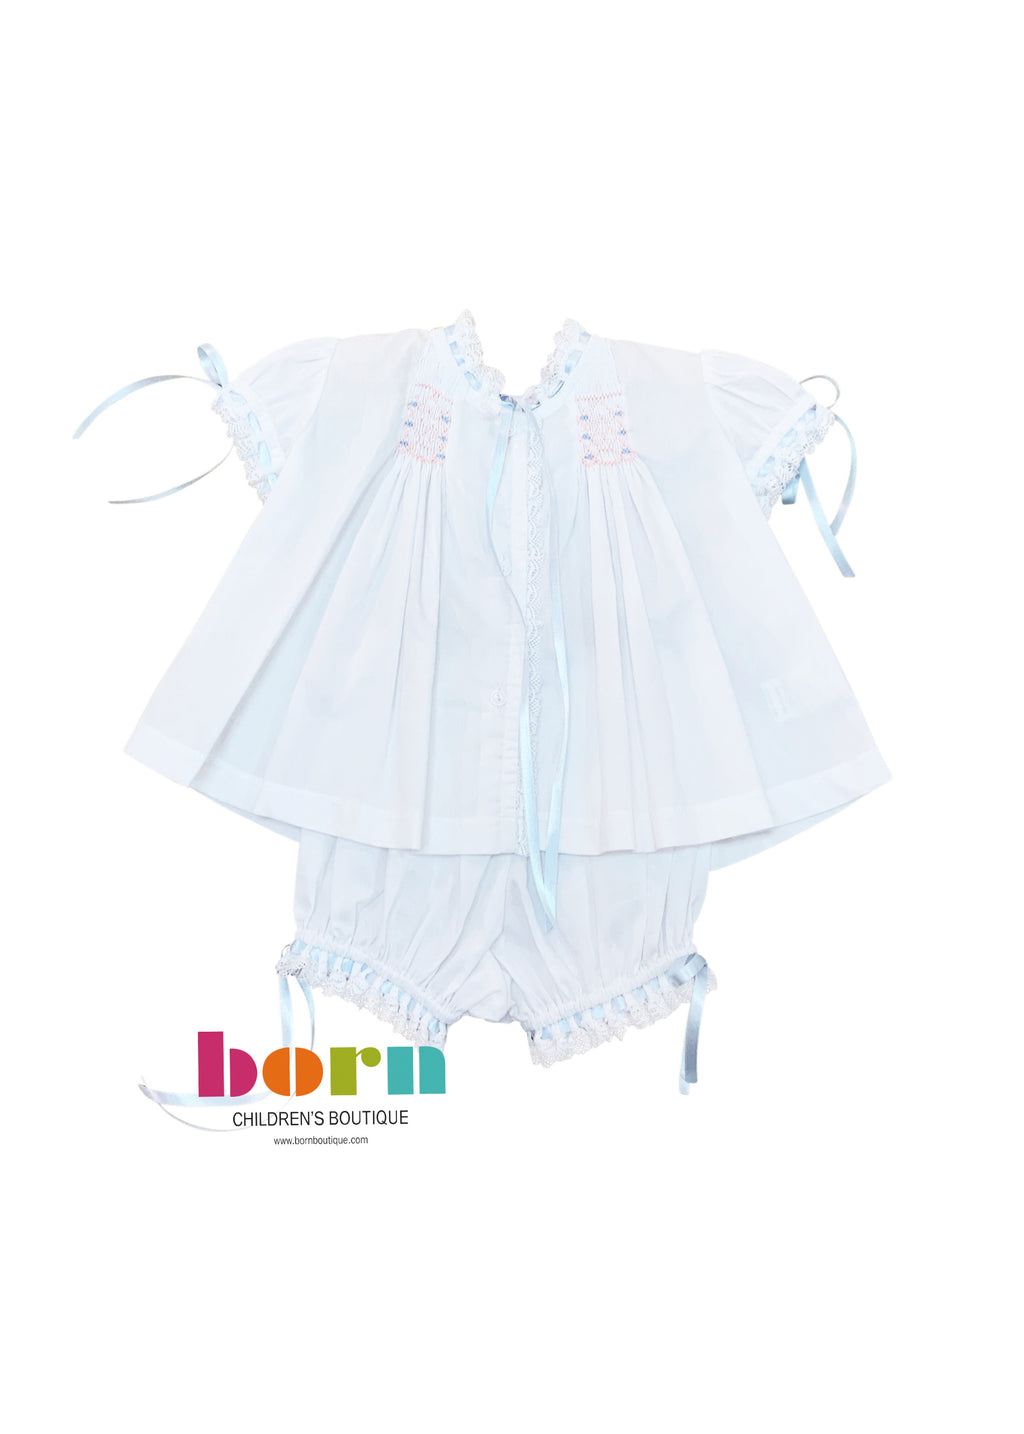 Heirloom Bloomer Set - White Batiste w/ Blue/Pink Smocking - Born Childrens Boutique